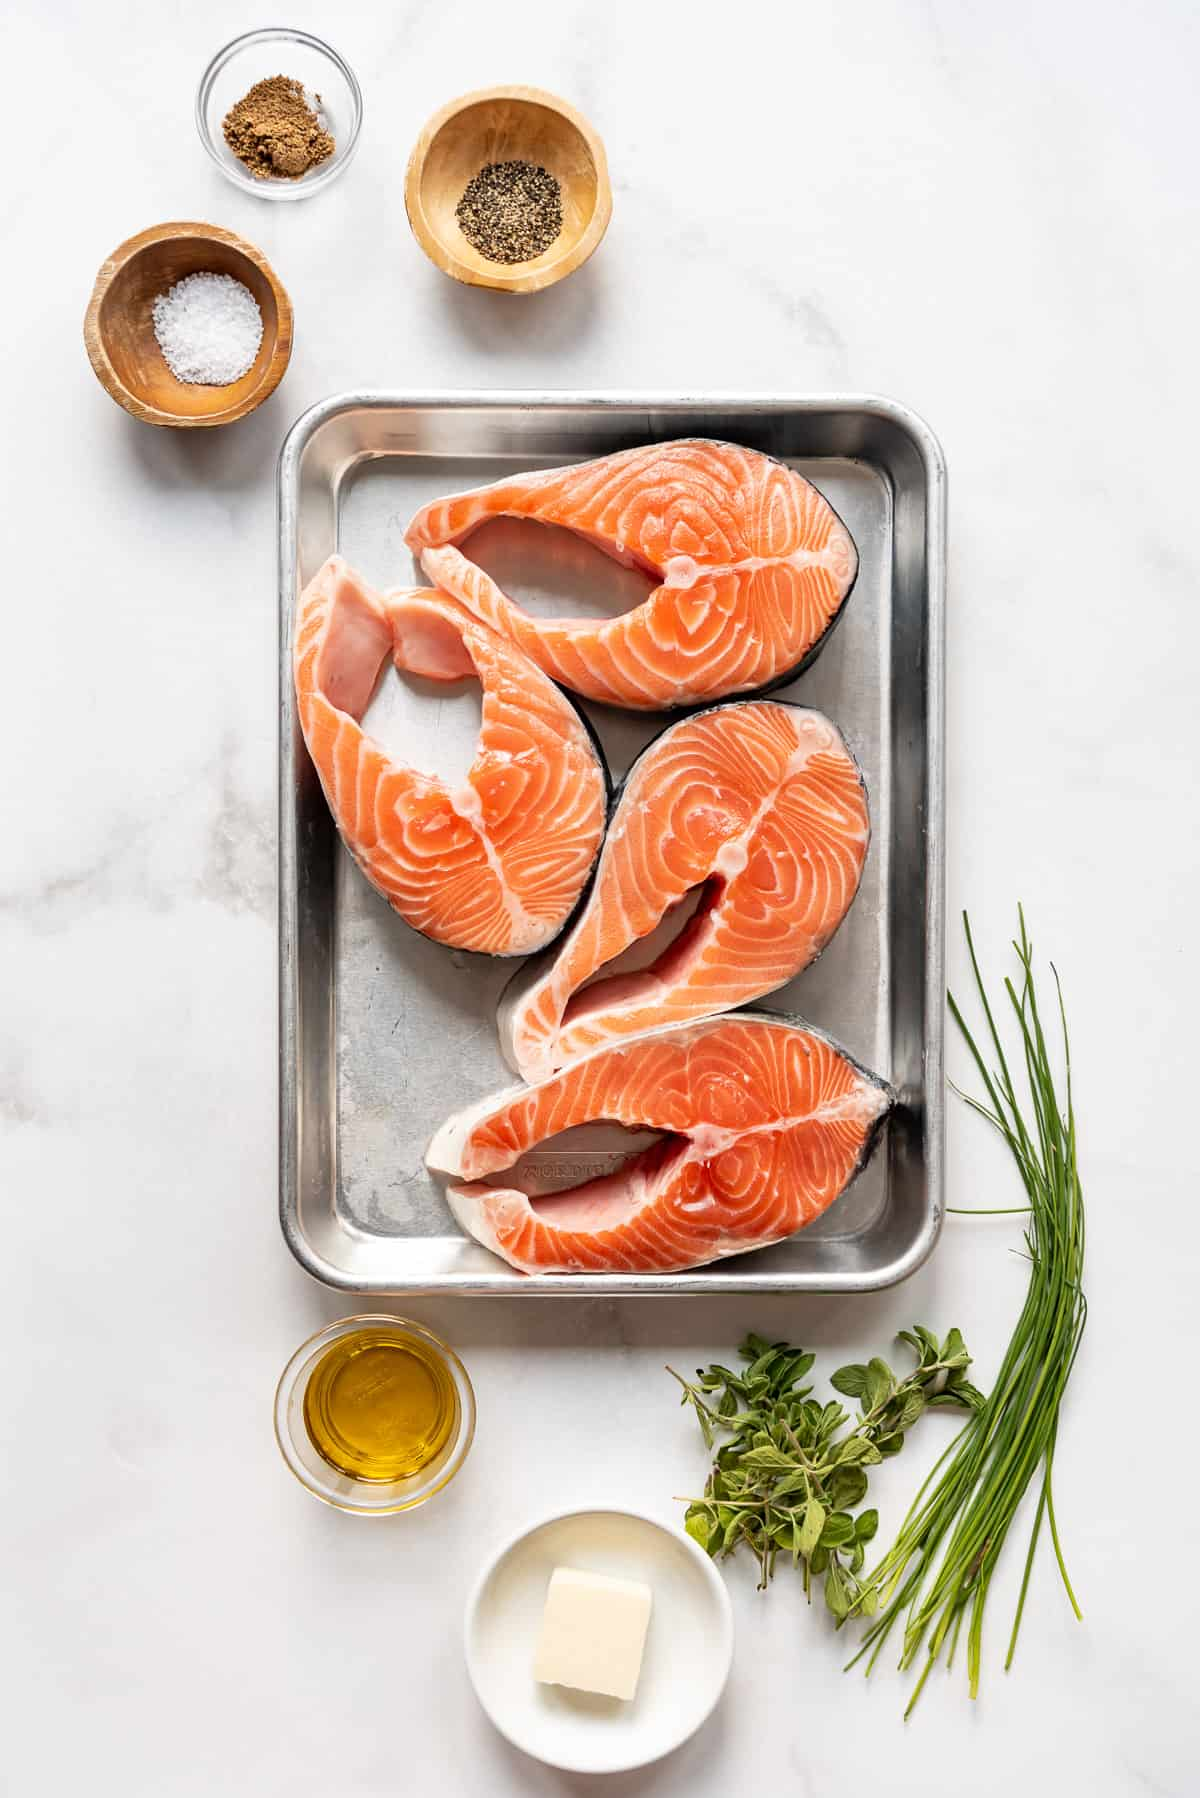 Salmon steaks on a baking sheet with salt, pepper, oil, butter, and fresh herbs around it.